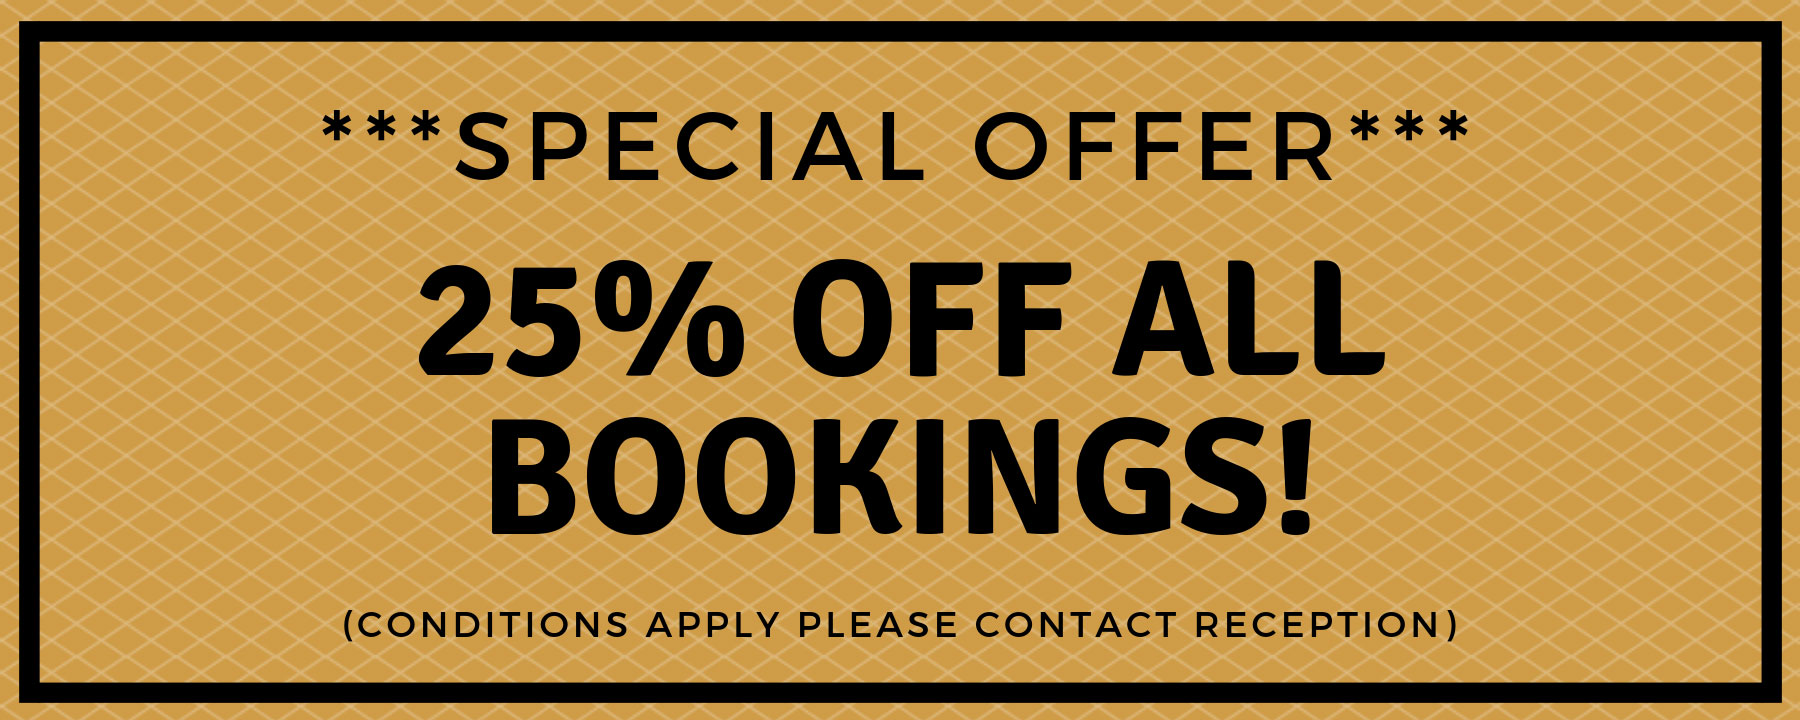 Liaisons 25% special discount offer!